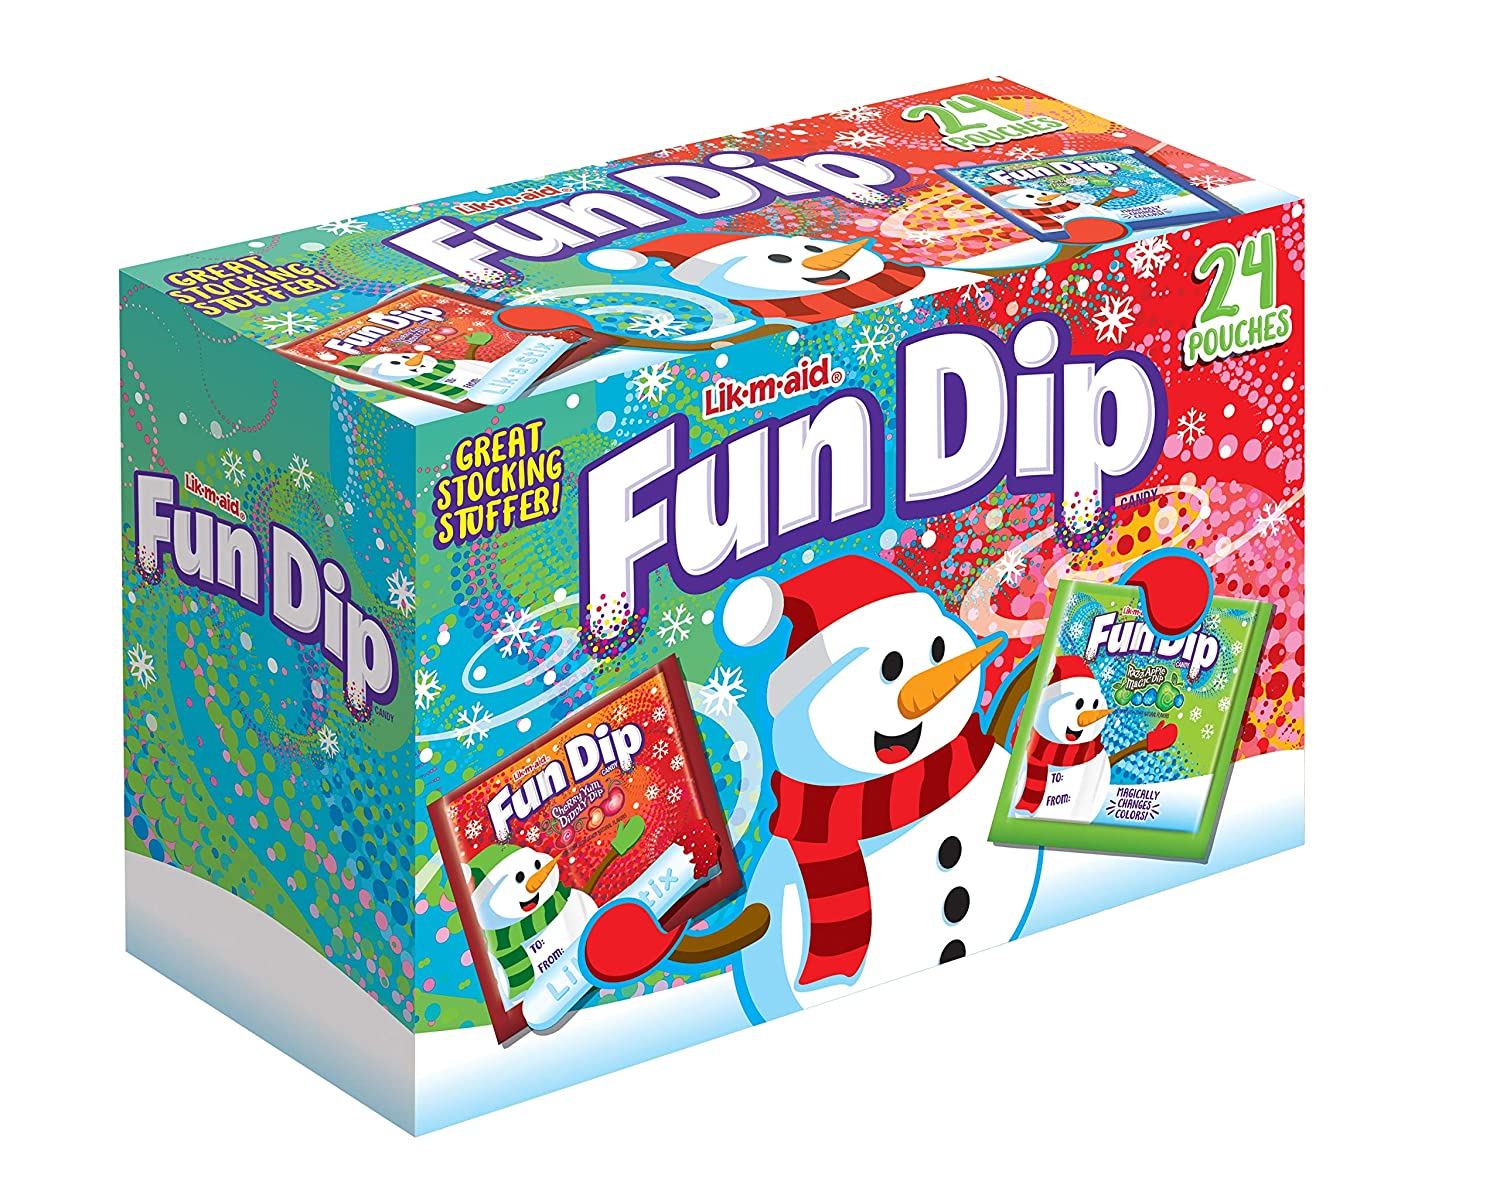 Lik-M-Aid 1 Box Fun Dip Max 81% Same day shipping OFF Holiday Cherry Edition Diddly an Yum -